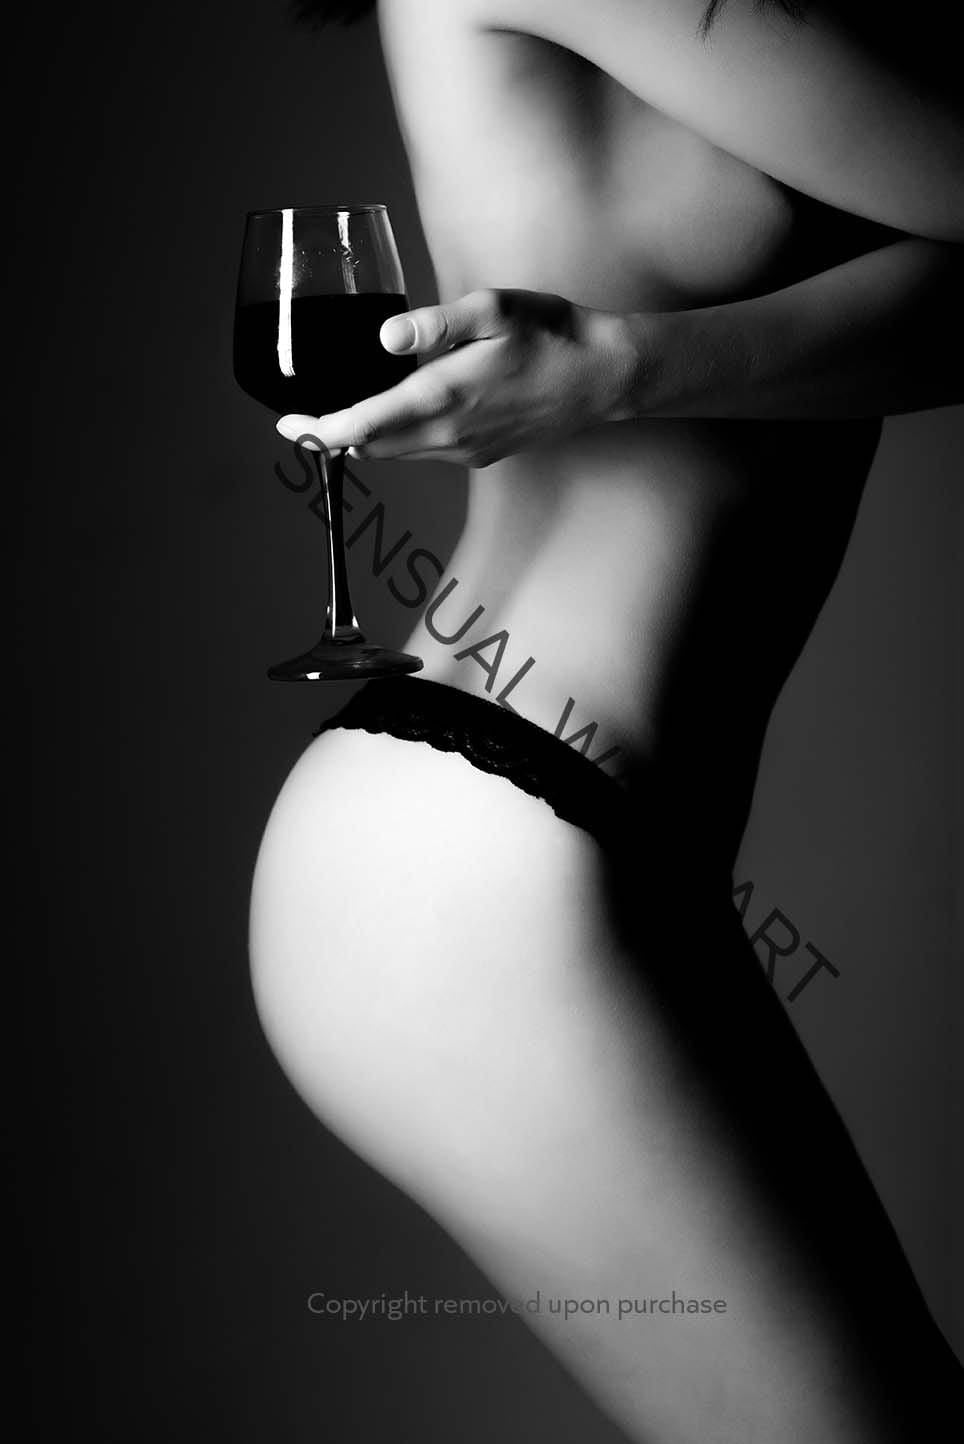 sexy female body bare breast lingerie holding glass of wine poster print